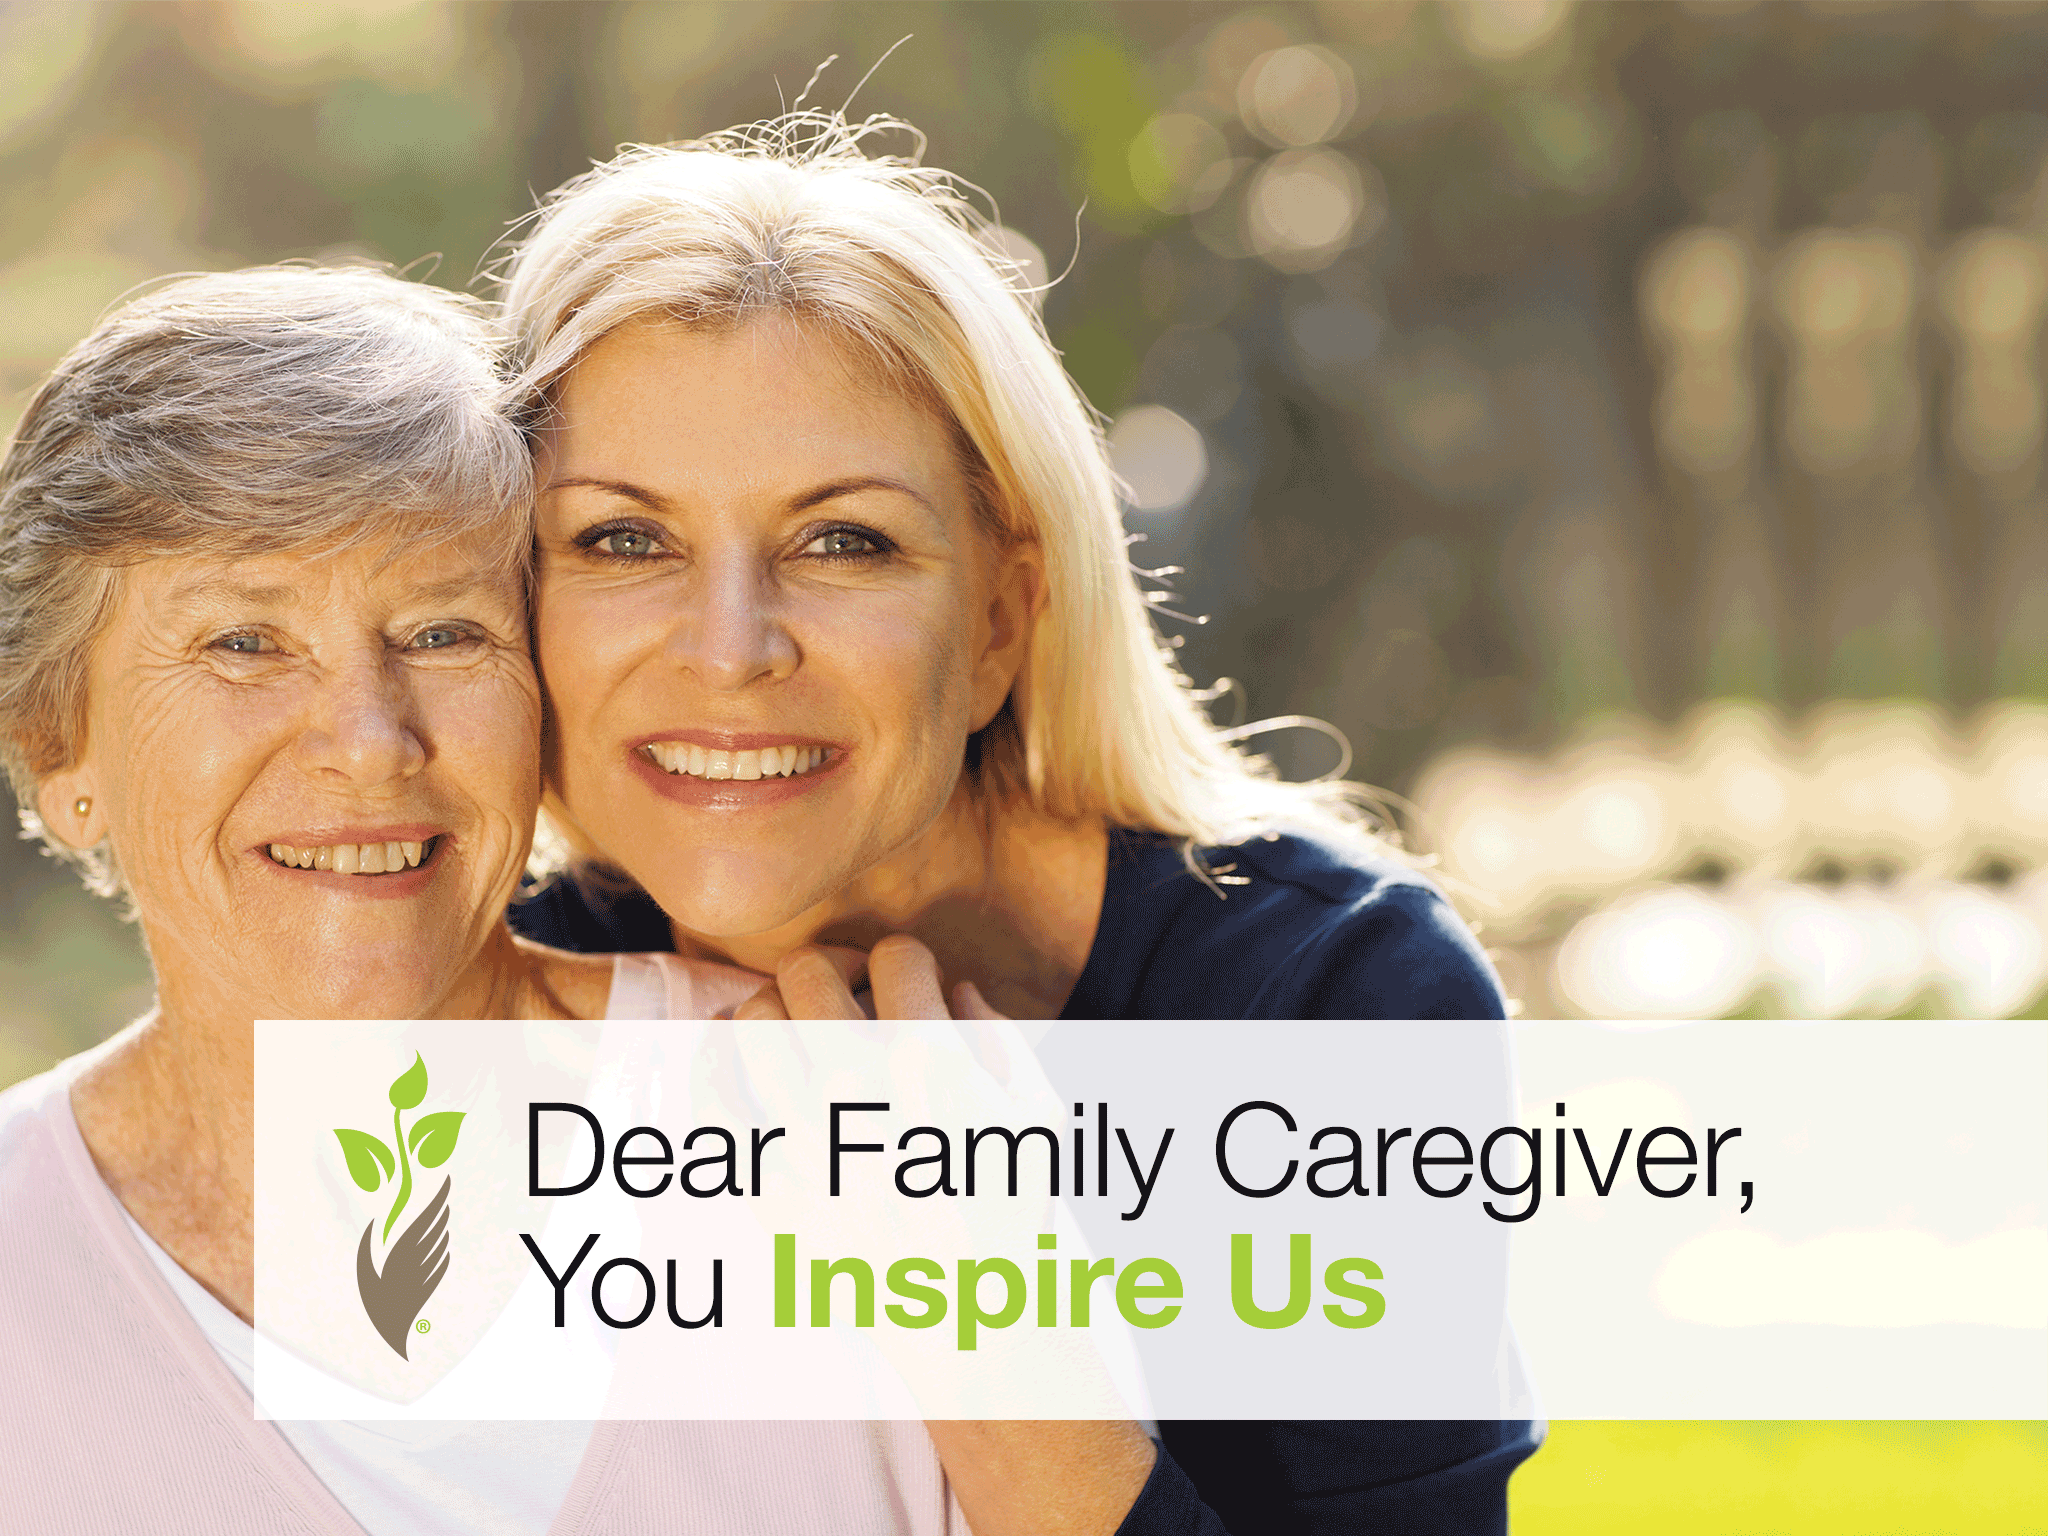 Dear Family Caregiver, You Inspire Us